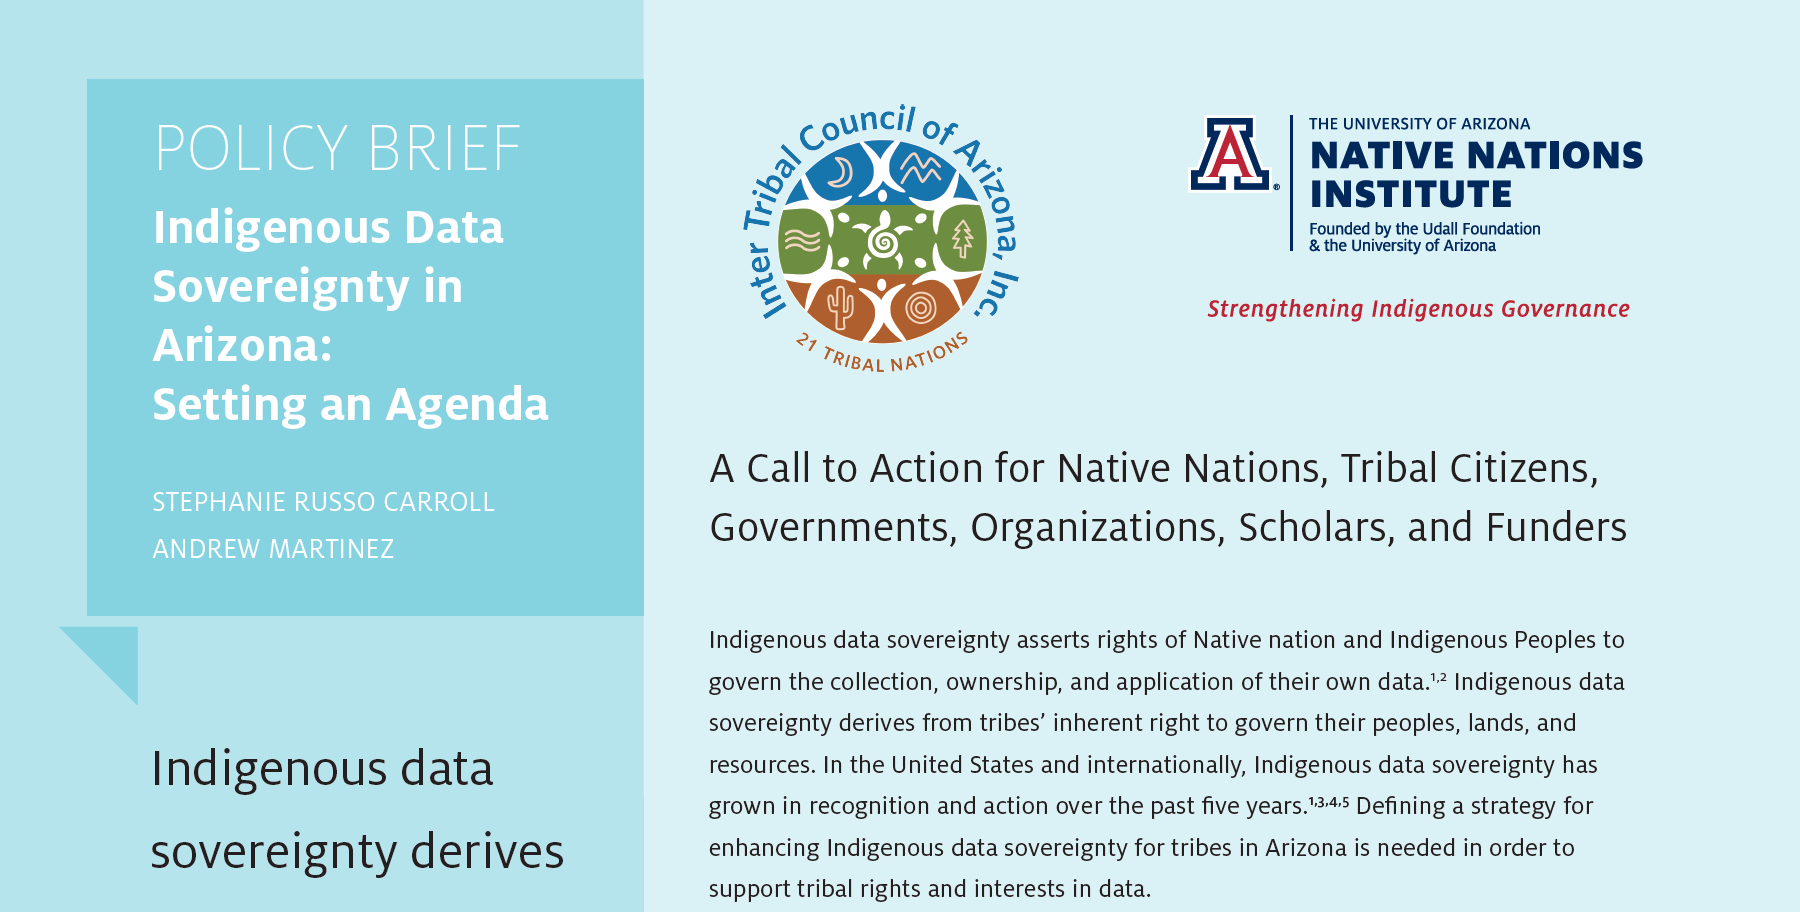 Indigenous_Data_Sovereignty_in_Arizona_Setting_an_Agenda.png